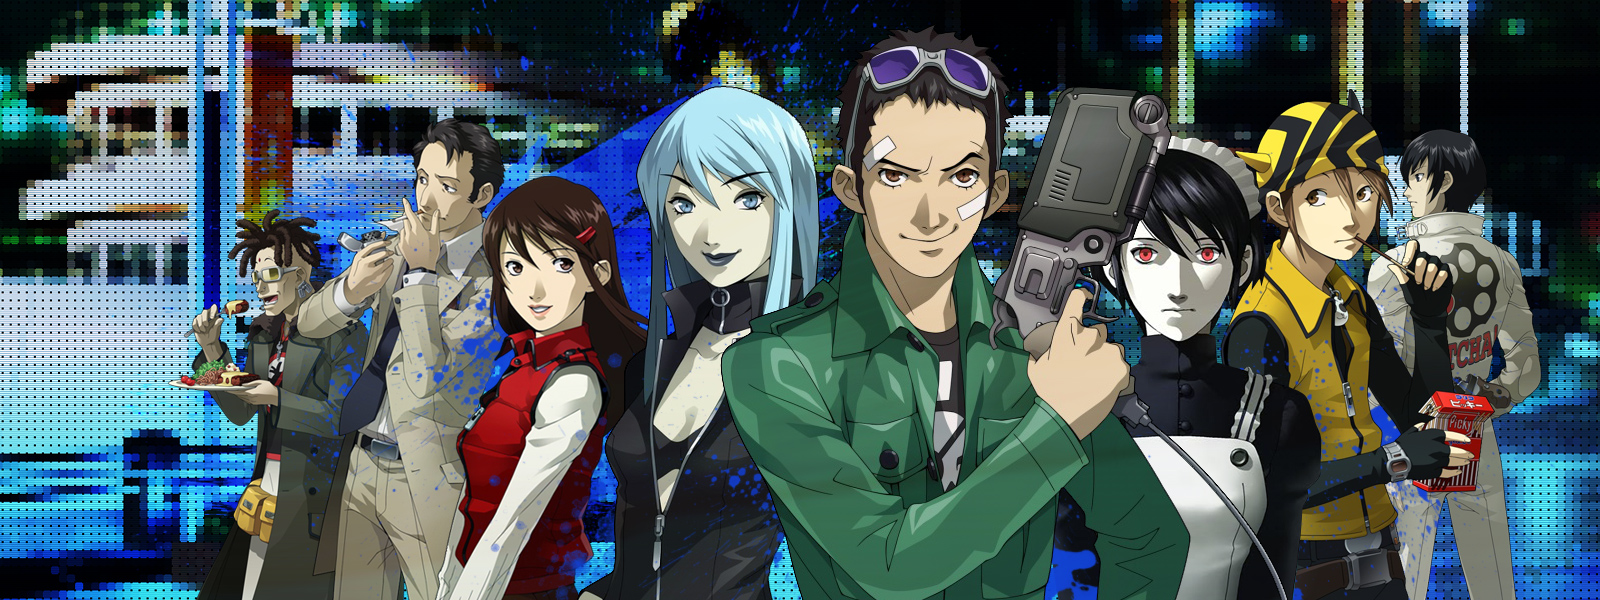 Modojo | Go Deeper Into The Shin Megami Tensei Rabbit Hole With Soul Hackers